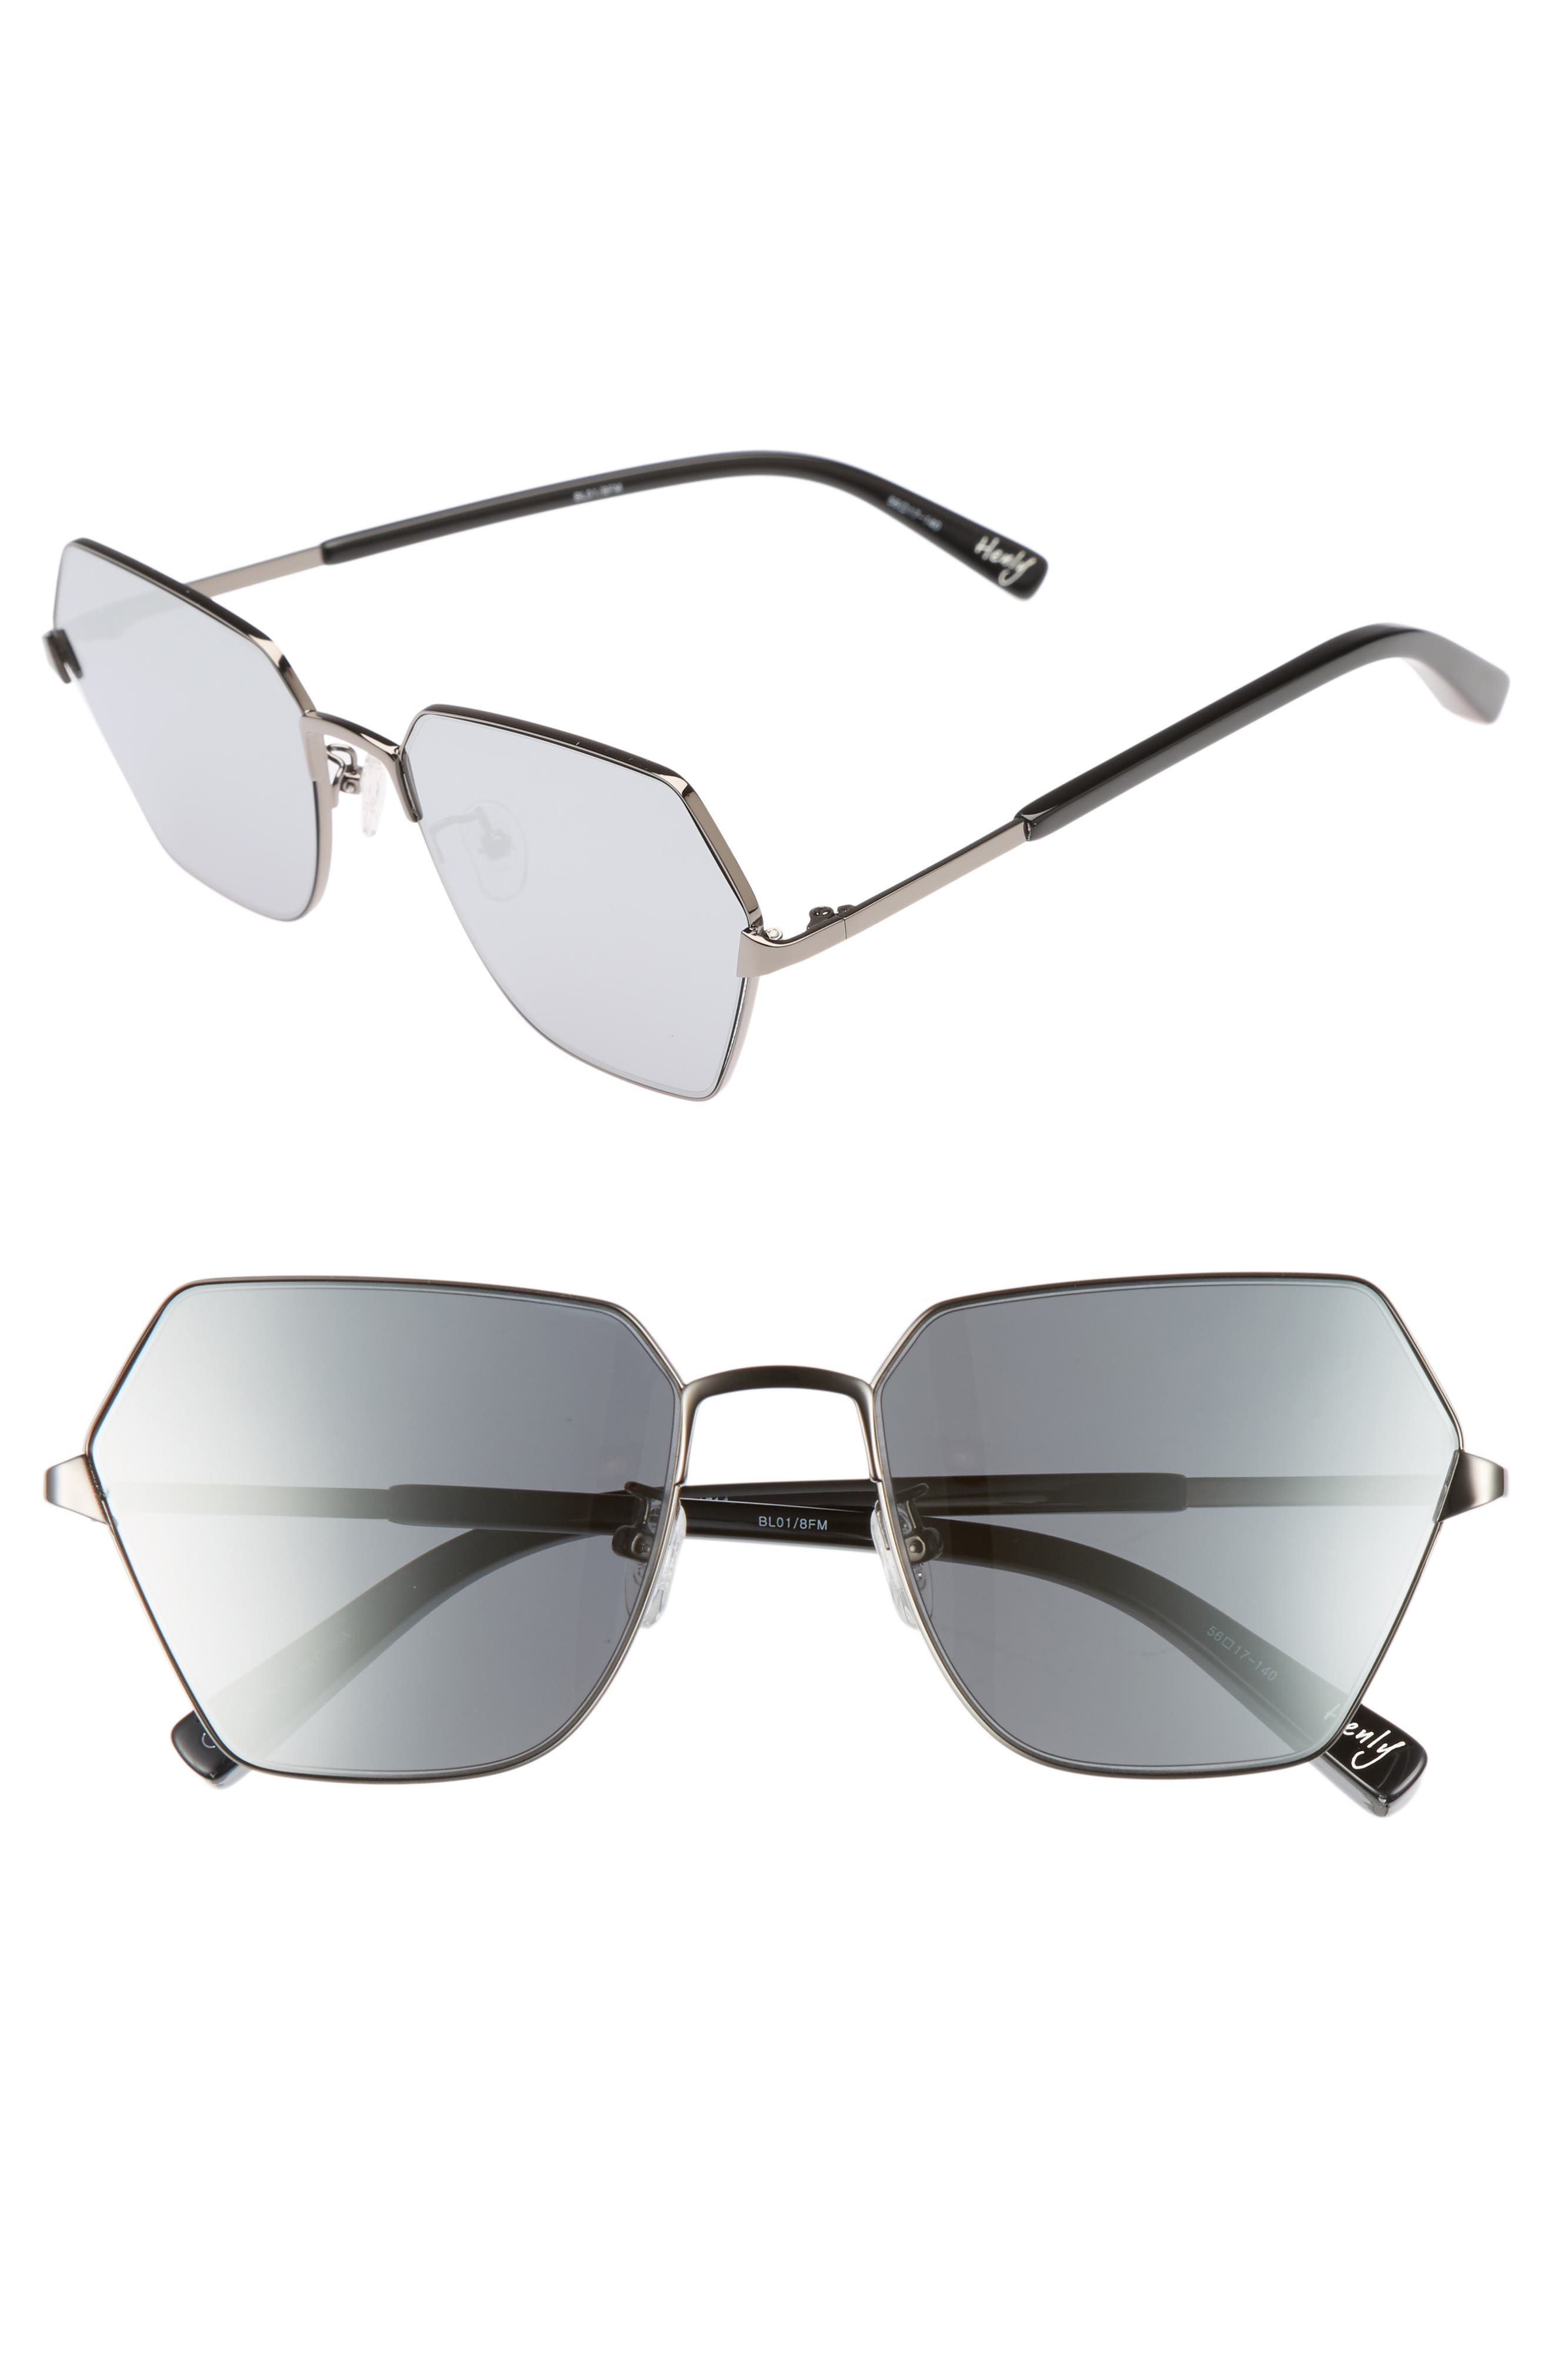 Henly 56mm Sunglasses,                         Main,                         color, 001